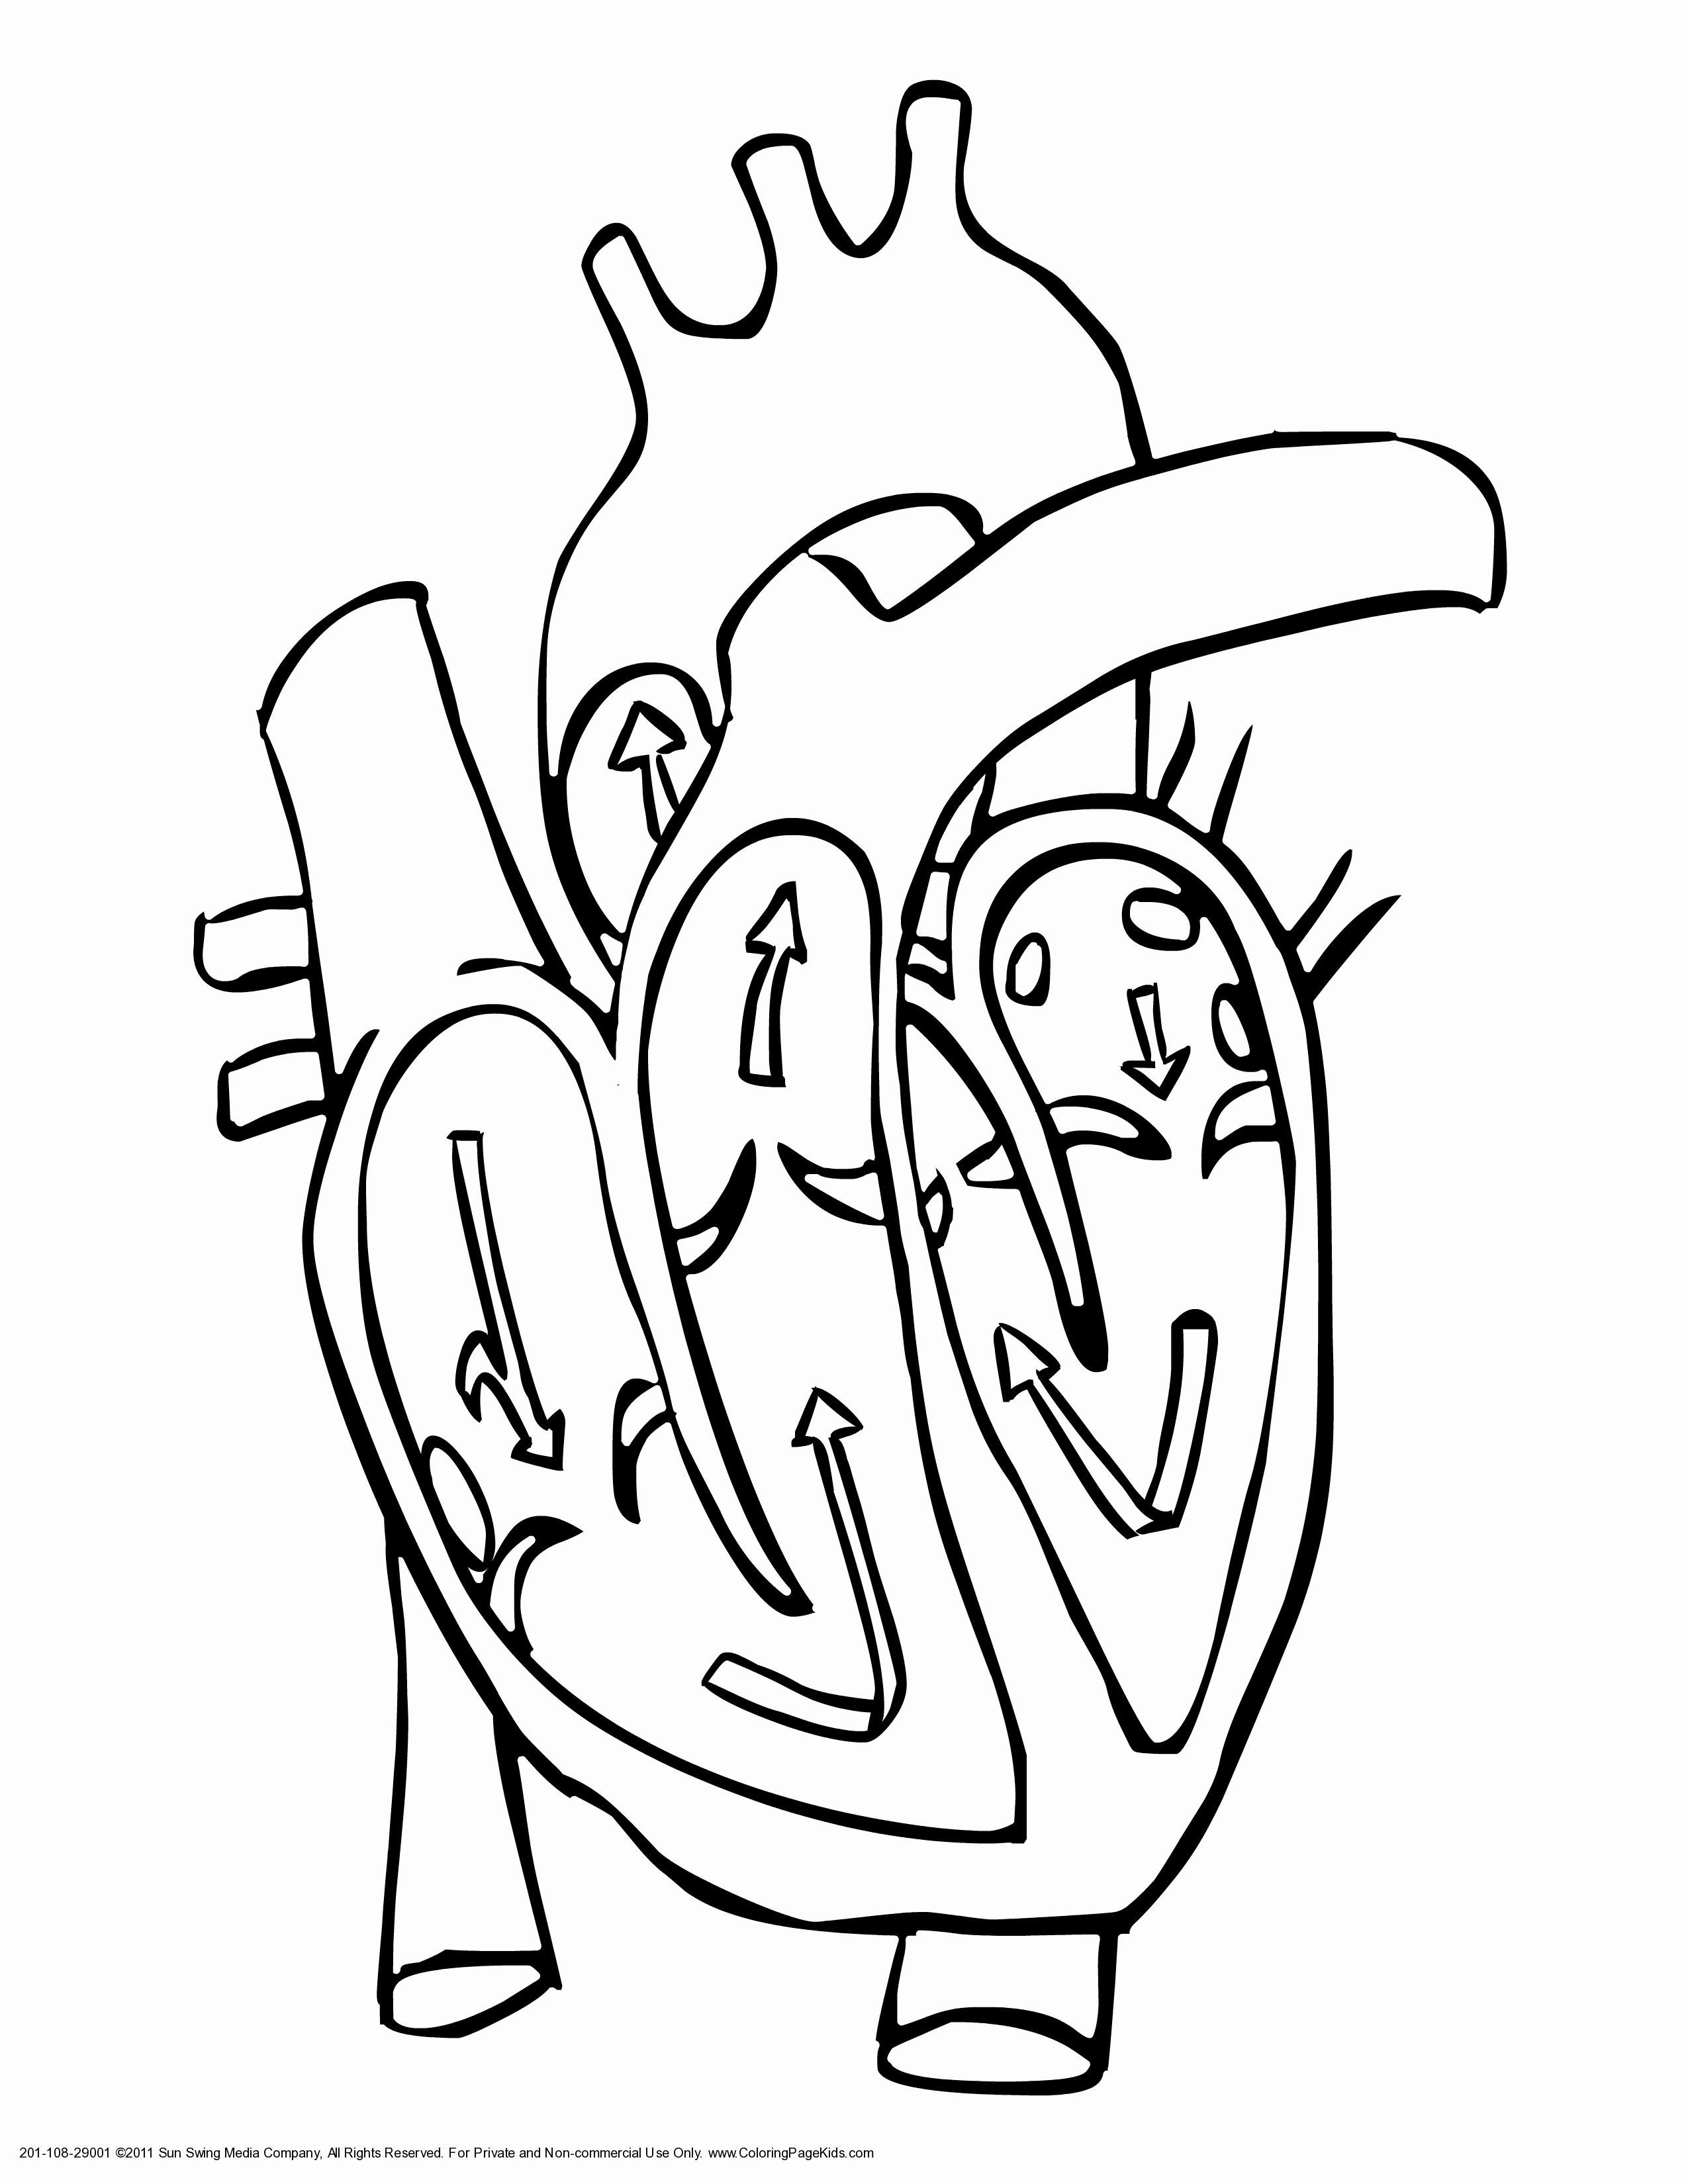 Heart Anatomy Coloring Worksheet Lovely Collection Of